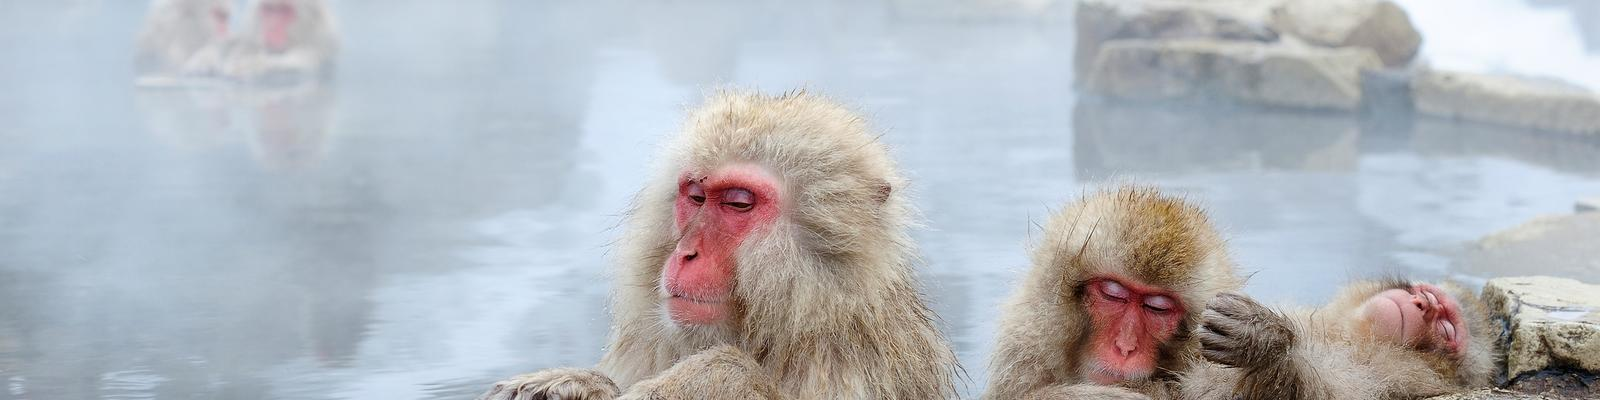 Snow Monkey standing on the edge of outdoor hot spring